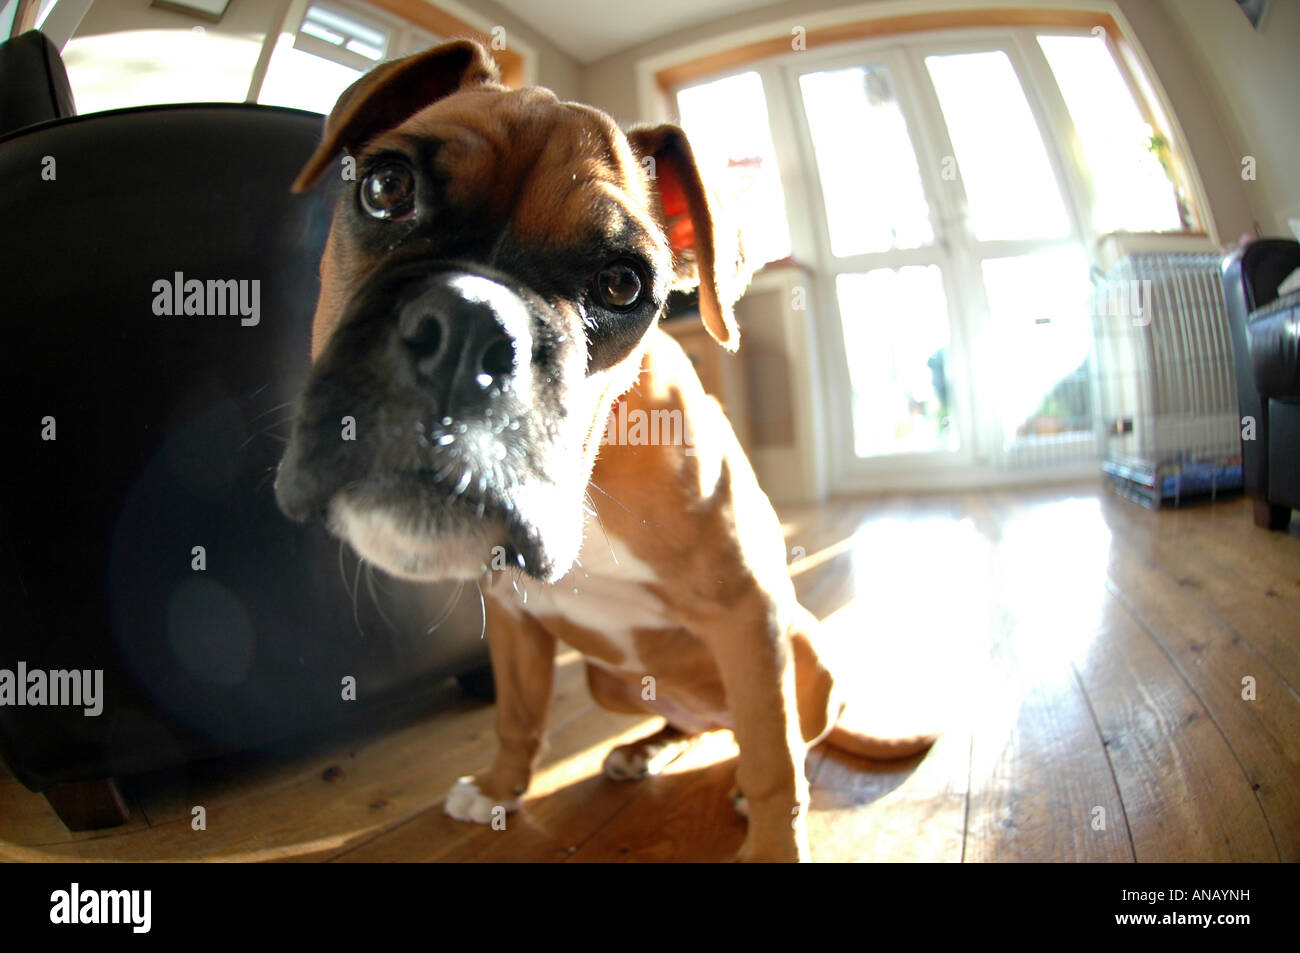 British boxer dog at home looking devoted and loyal. Funny close up view of boxer puppy breathing hot breath. UK - Stock Image